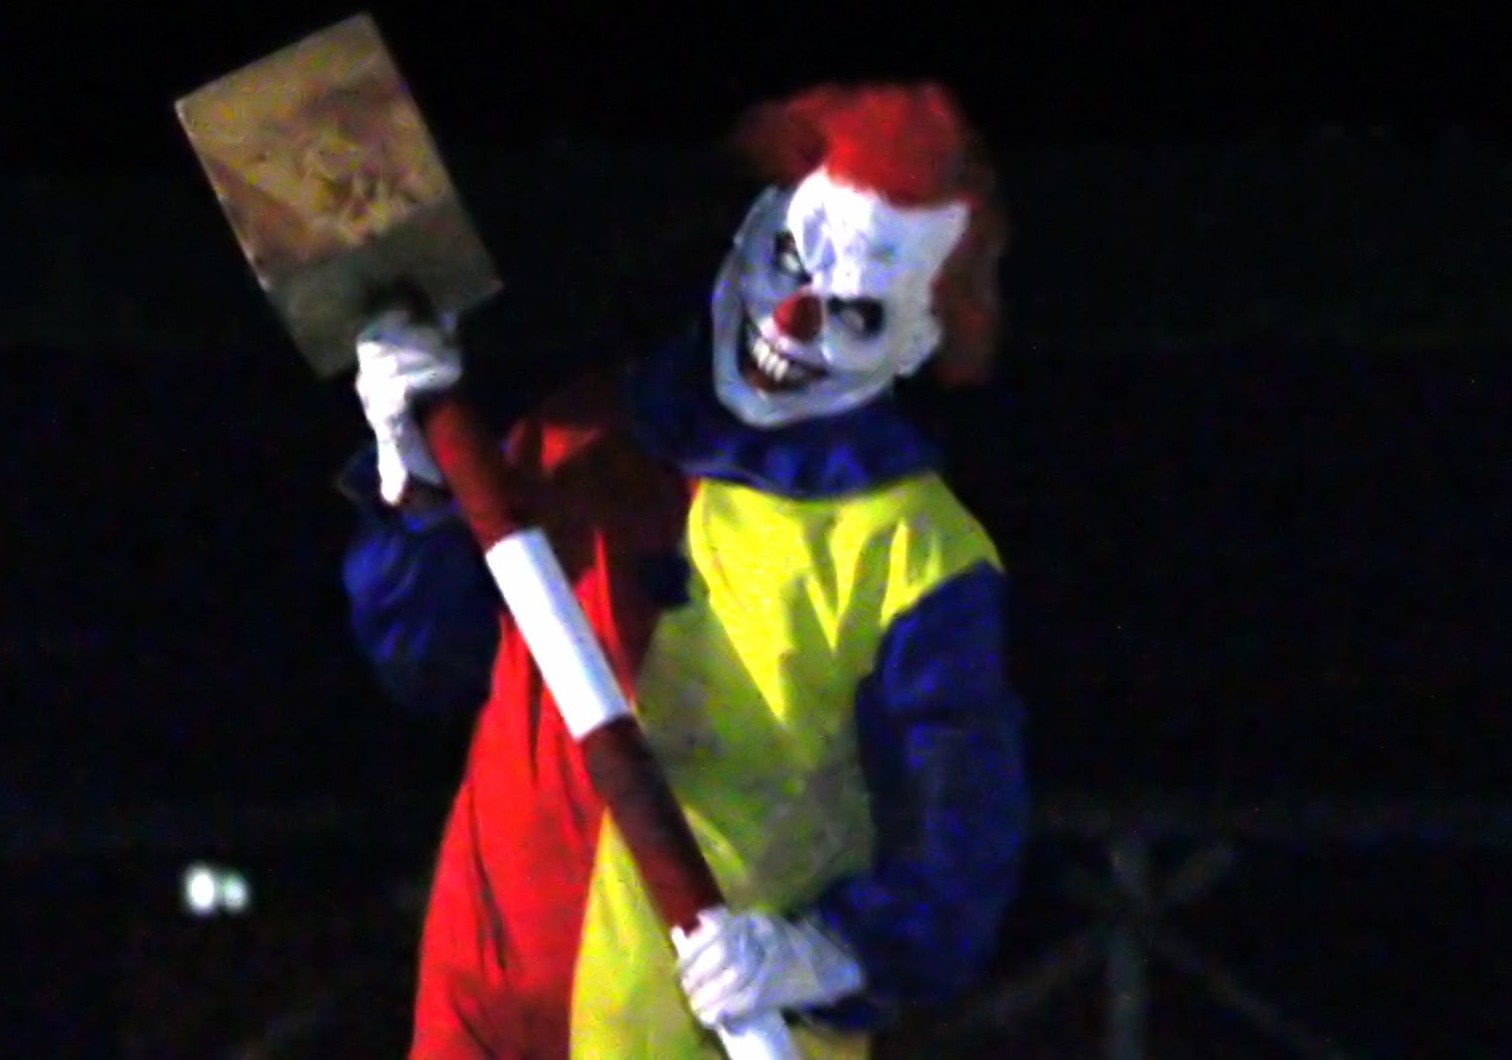 Killer Clown The Most Scare Prank!